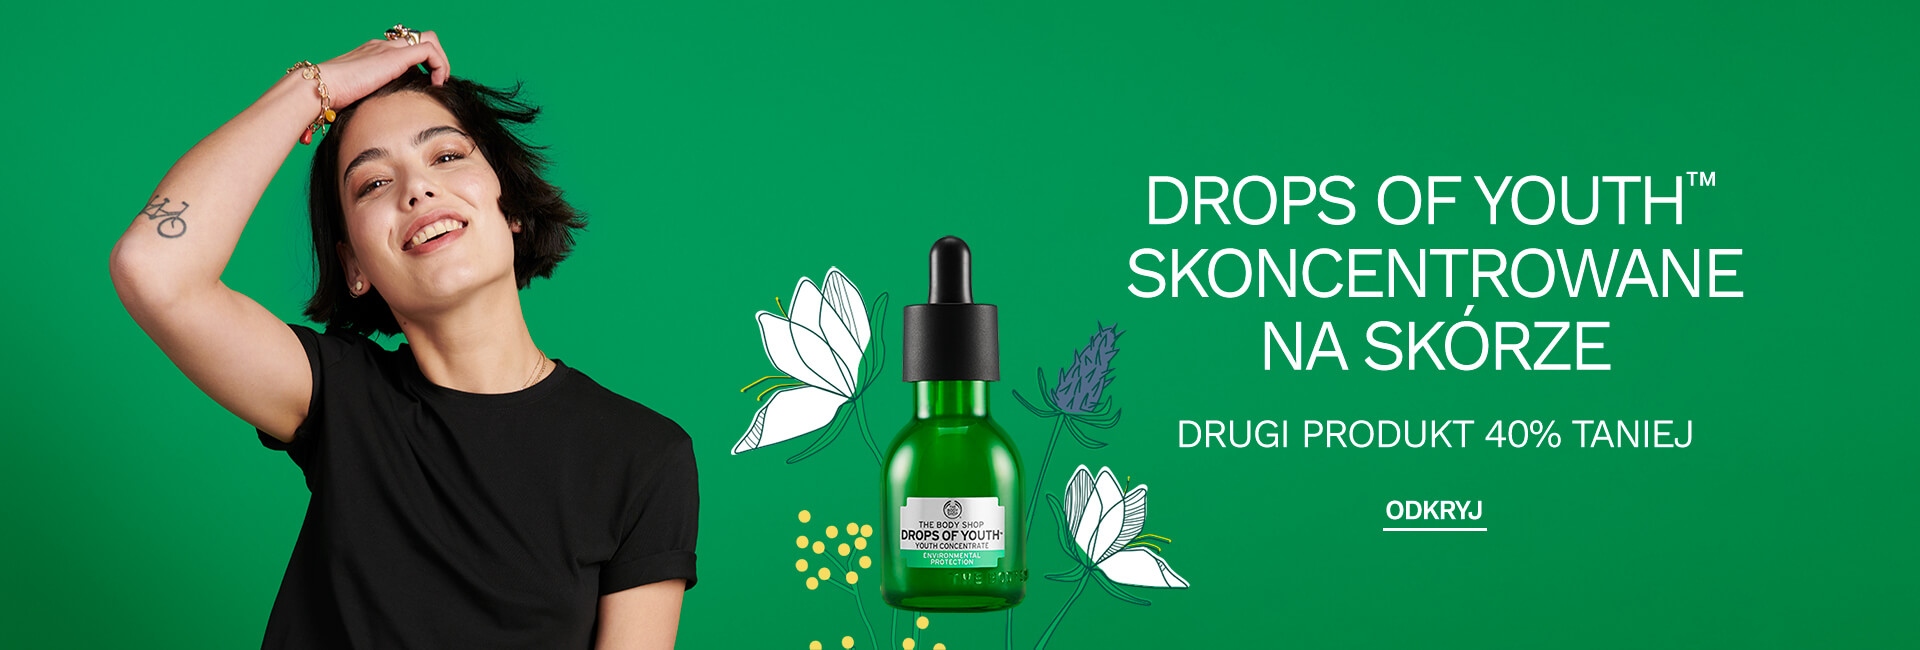 The Body Shop: 40% rabatu na drugi produkt Drops of Youth                         title=